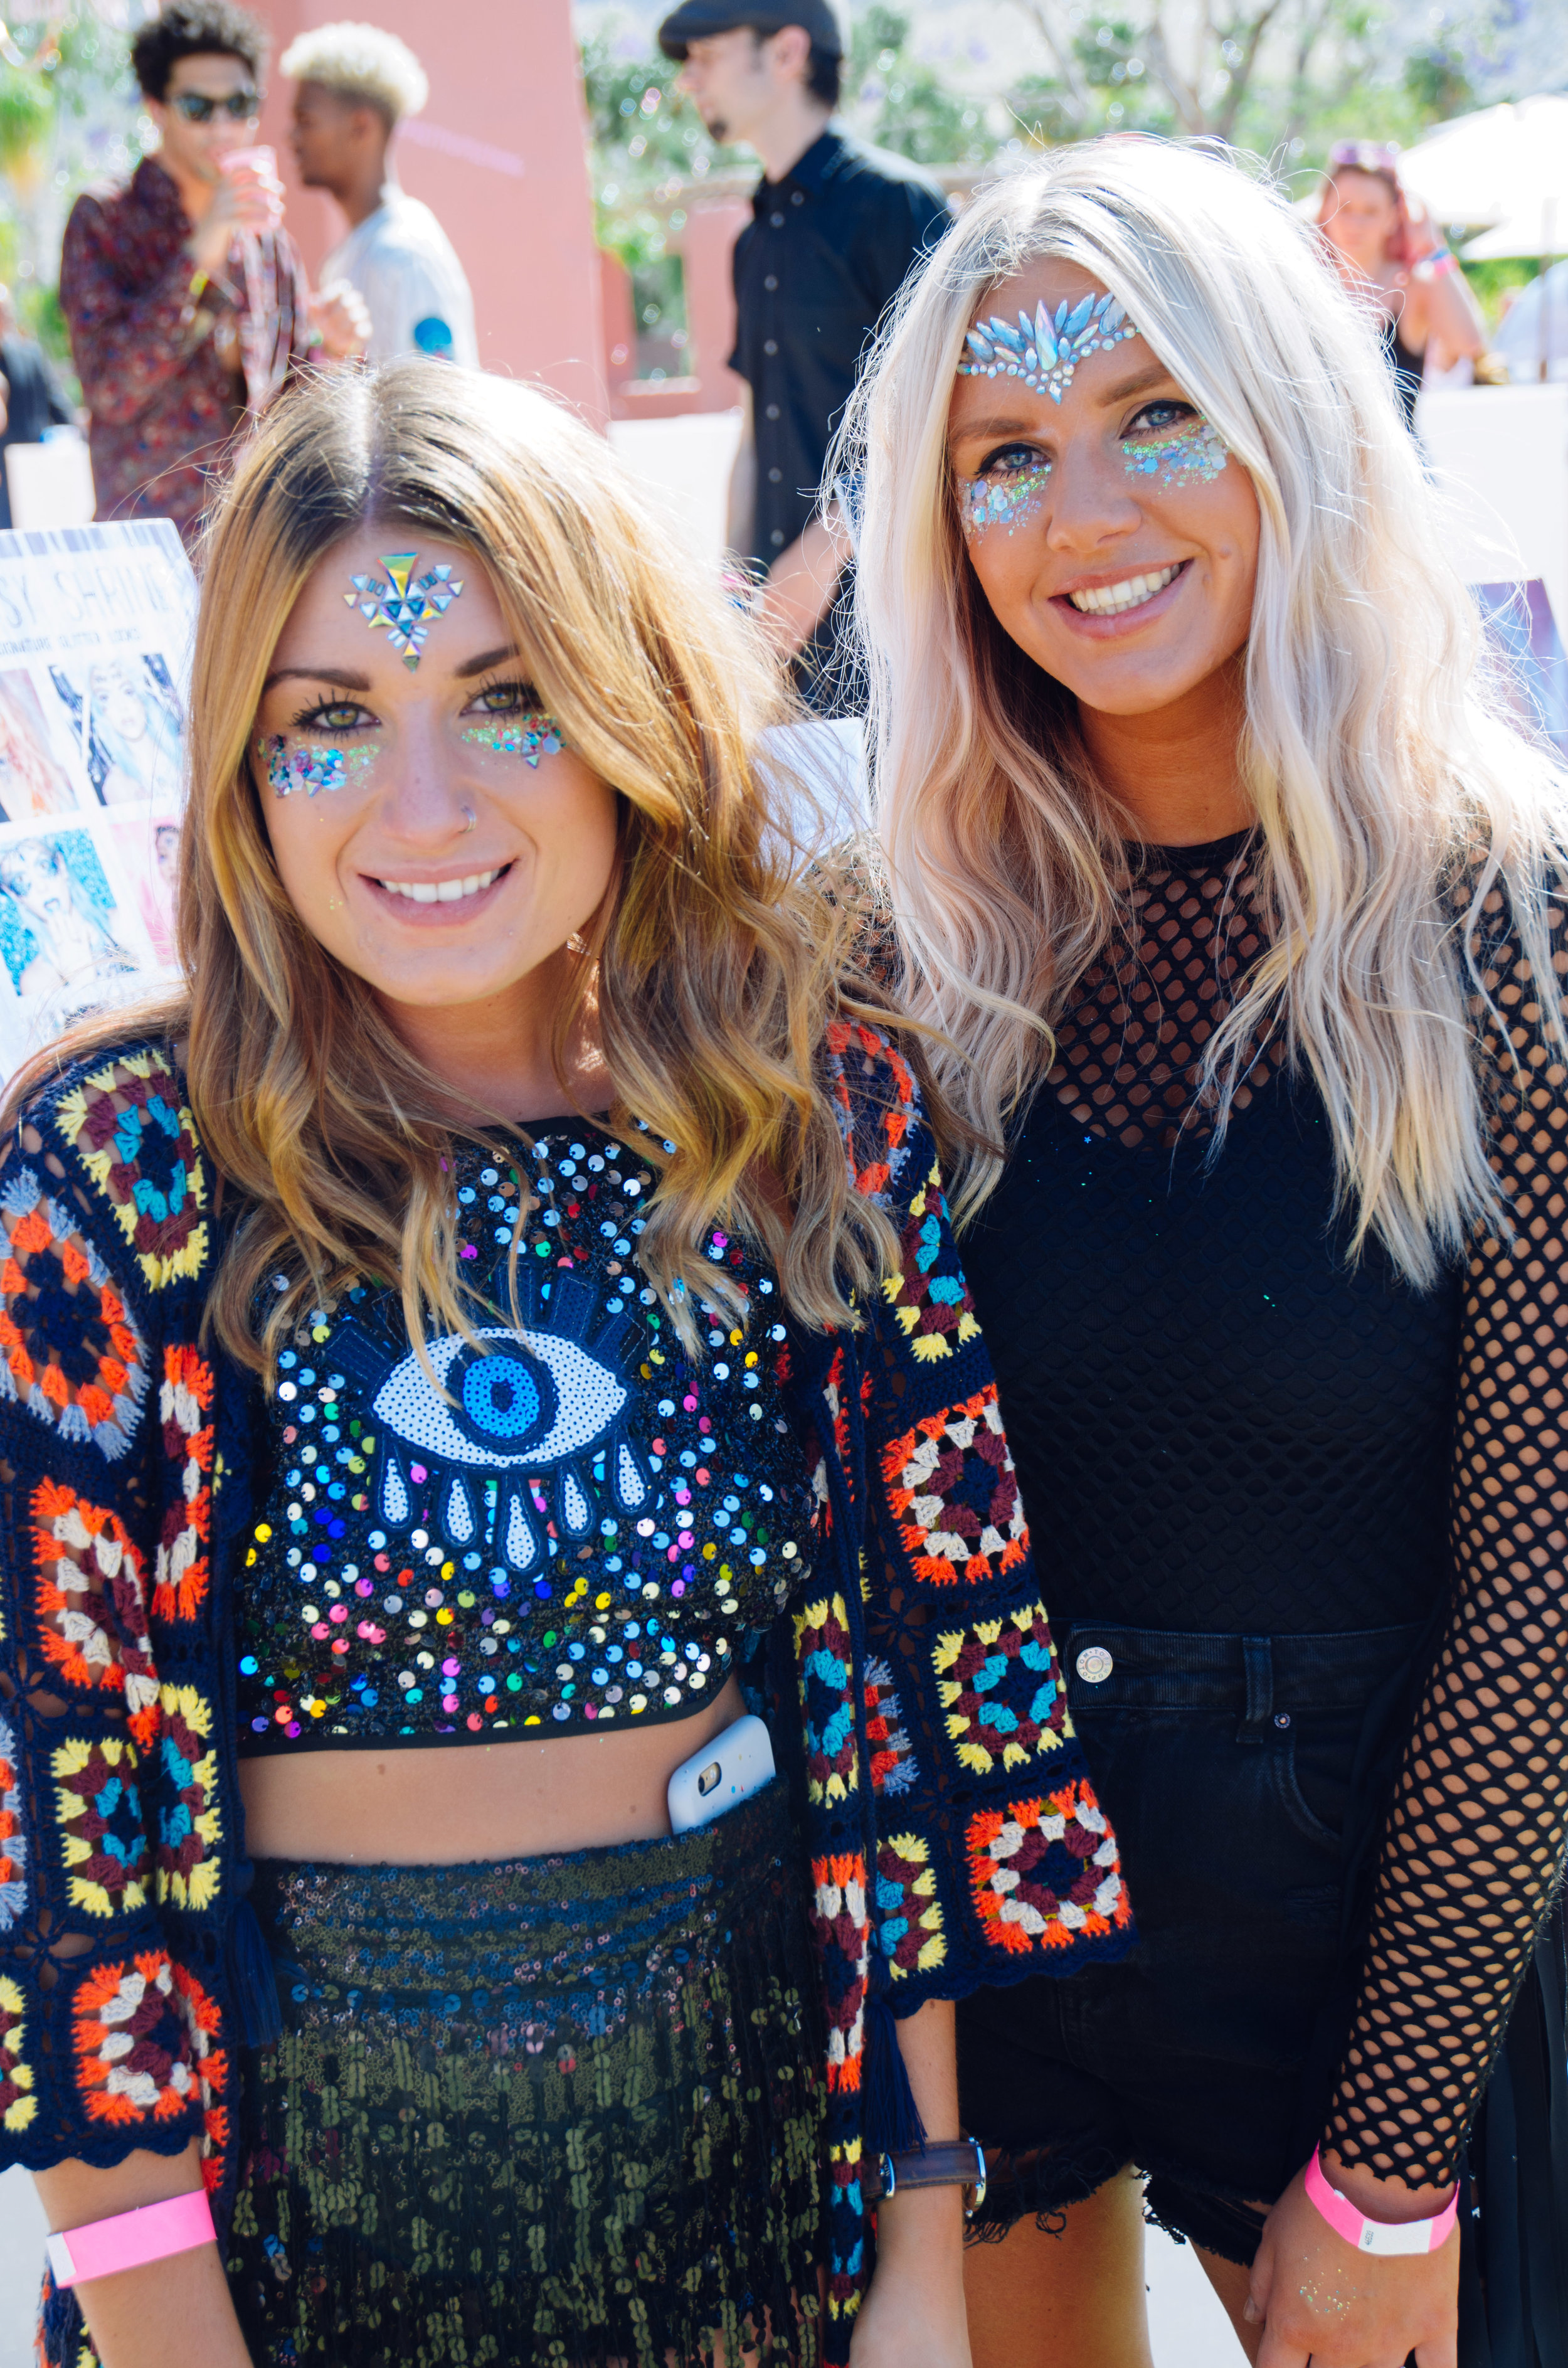 Ultimate Hollywood Coachella Poolside Party the gypsy shrine jewel glitter faces.jpg